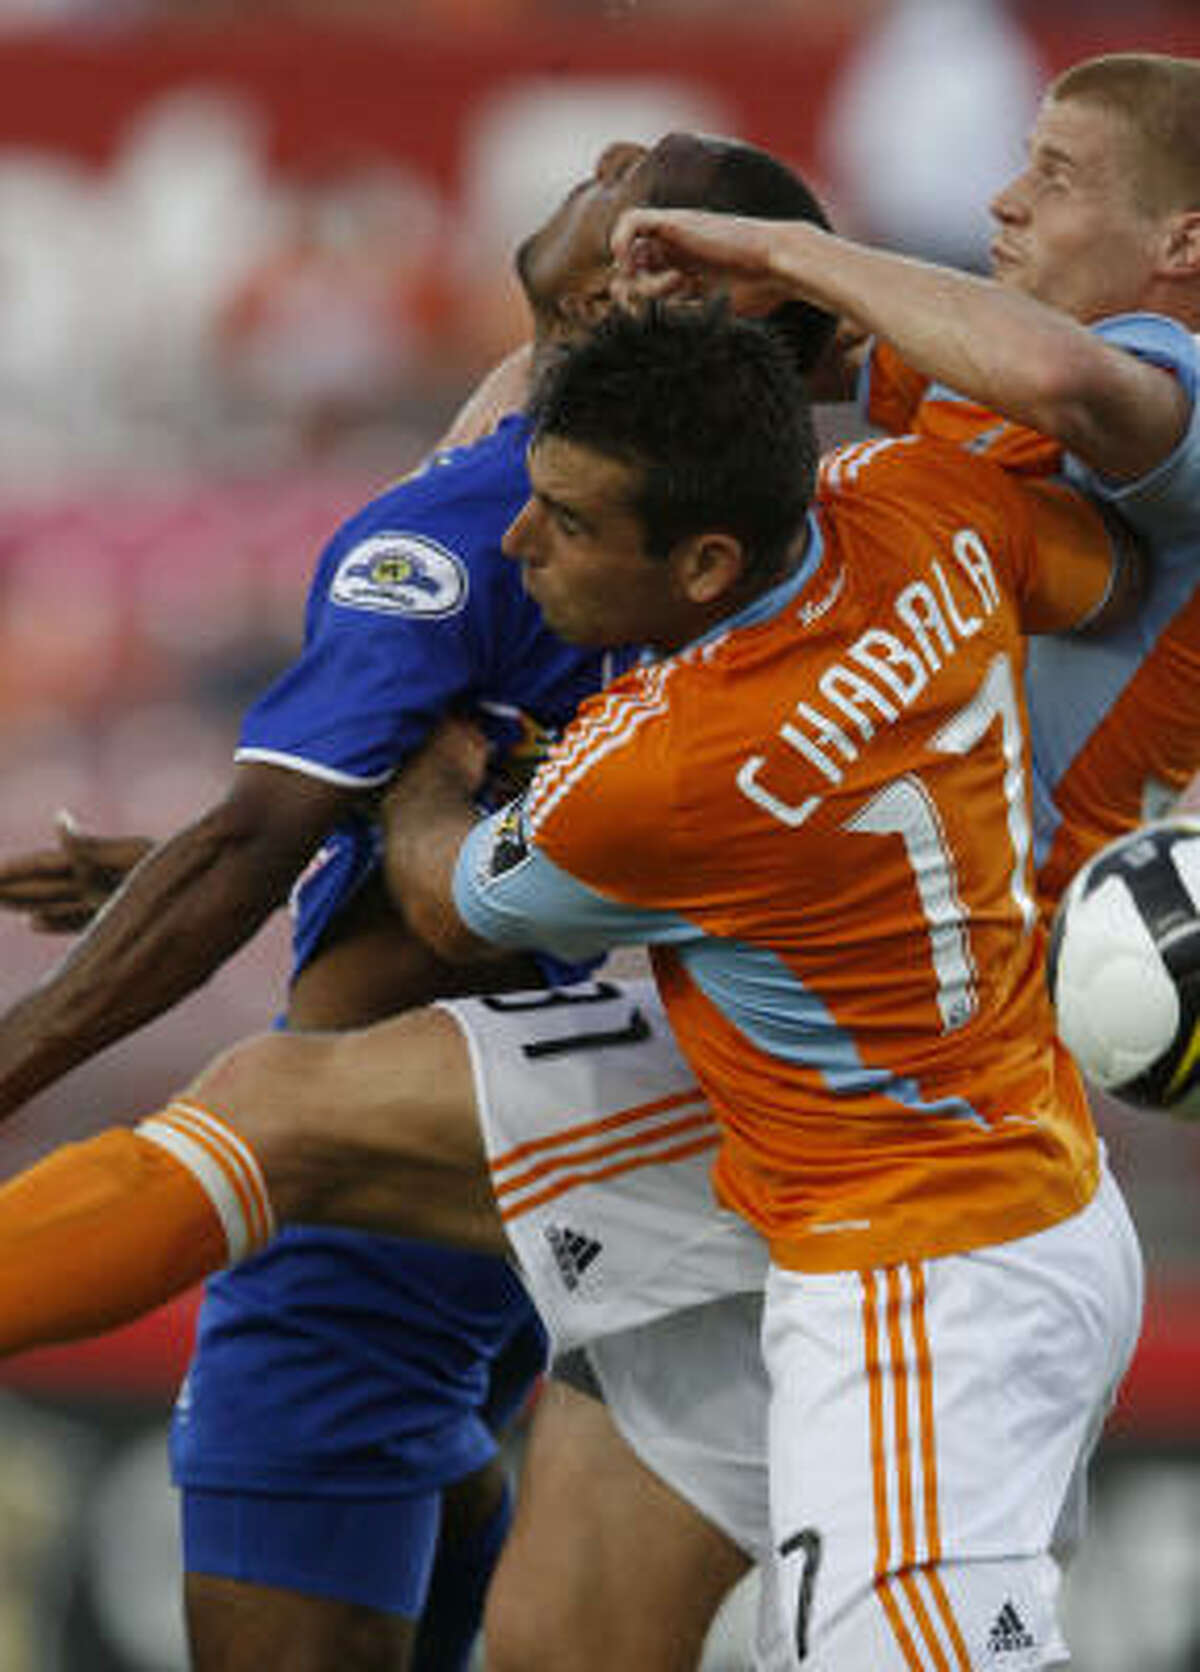 Aug. 19: Dynamo 1, A.D. Isidro Metapan 0 A.D. Isidro Metapan's Anel Alejandro Canales, left, goes up for the ball against Dynamo defenders Mike Chabala (17) and Andrew Hainault.